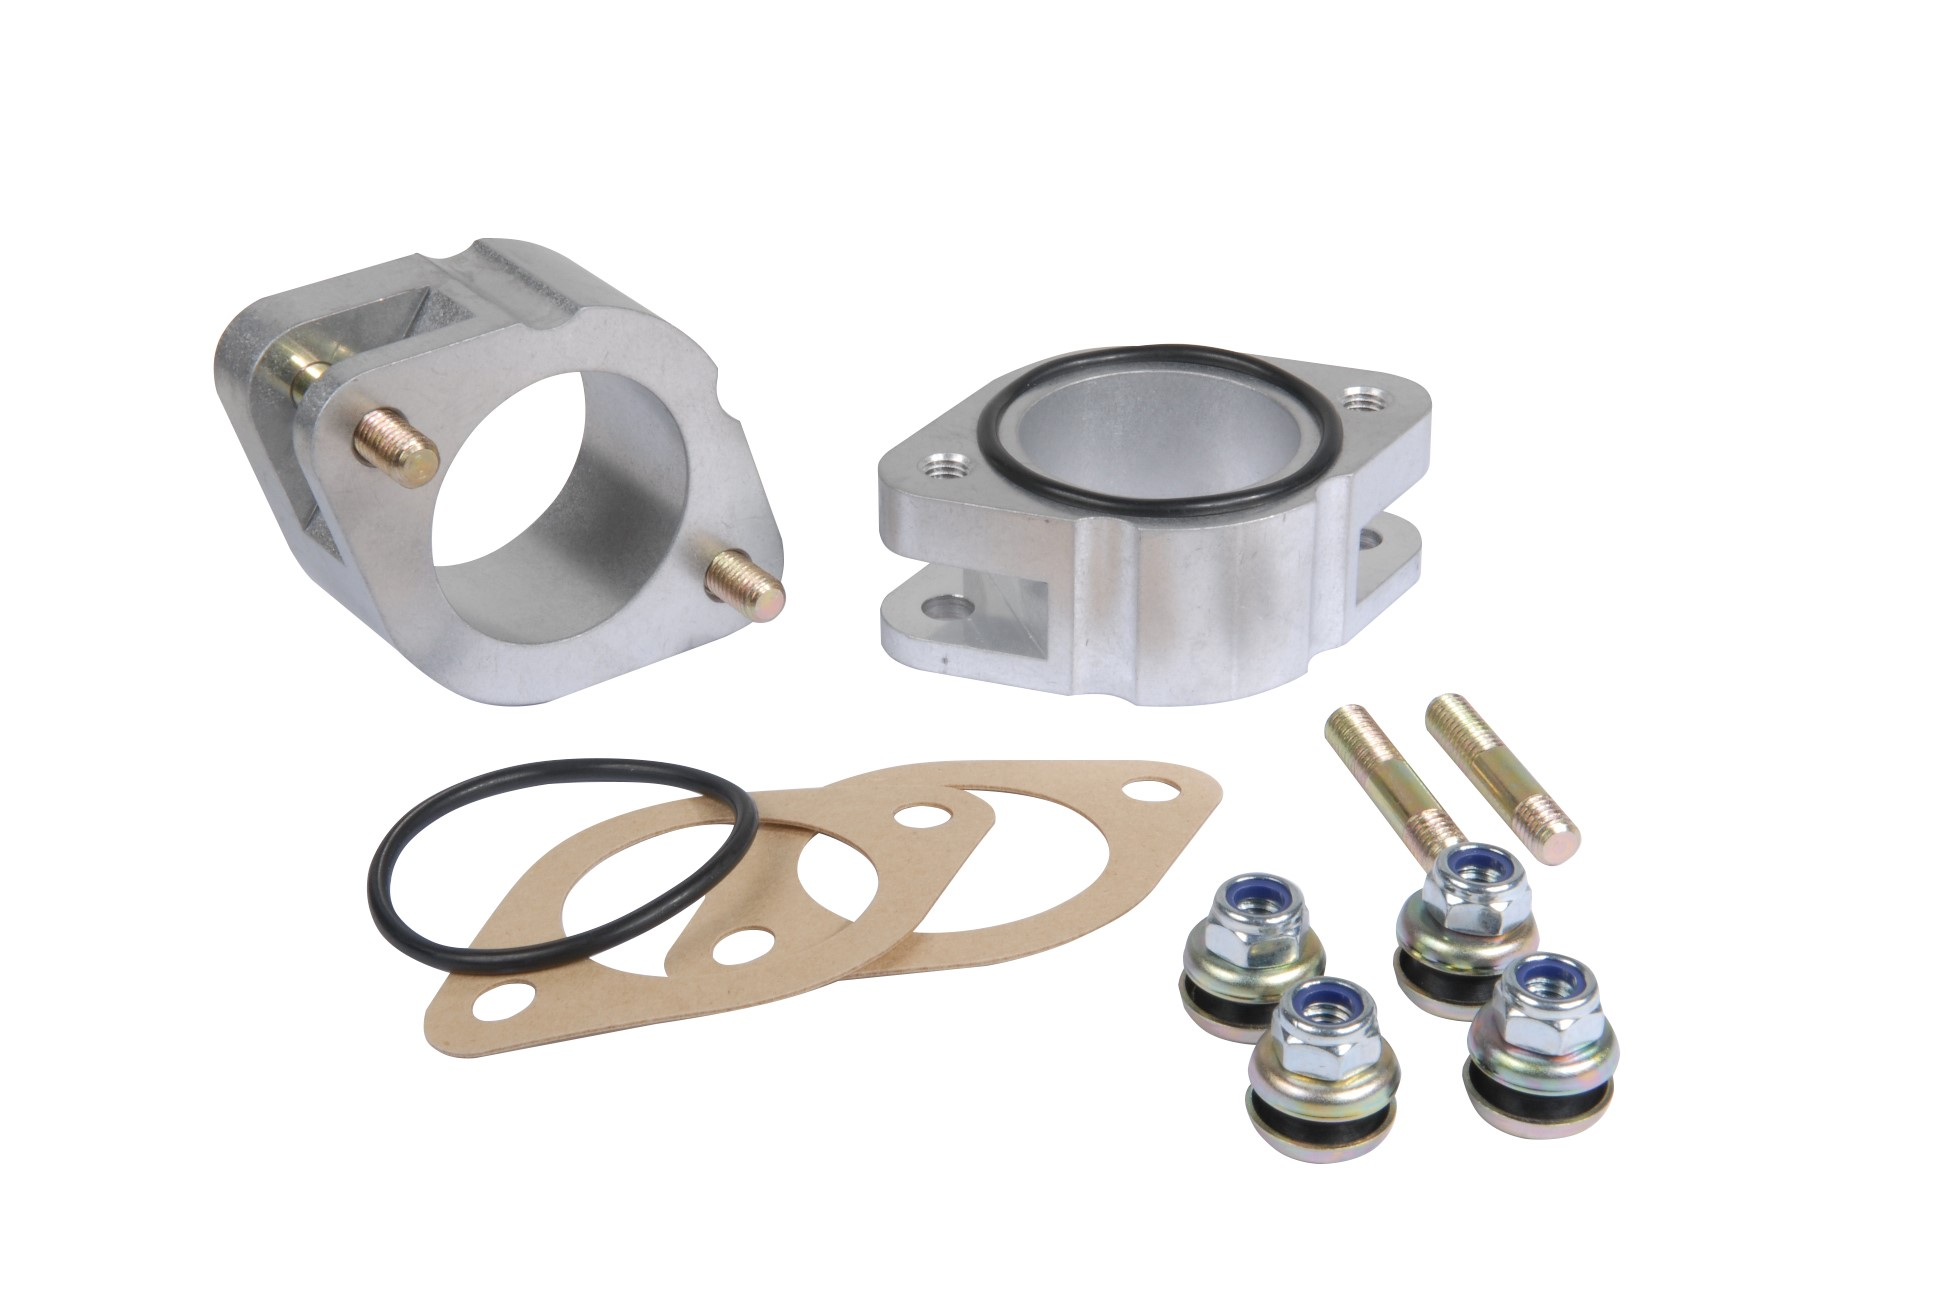 Top Quality Manifold Spacer Kits Now Available